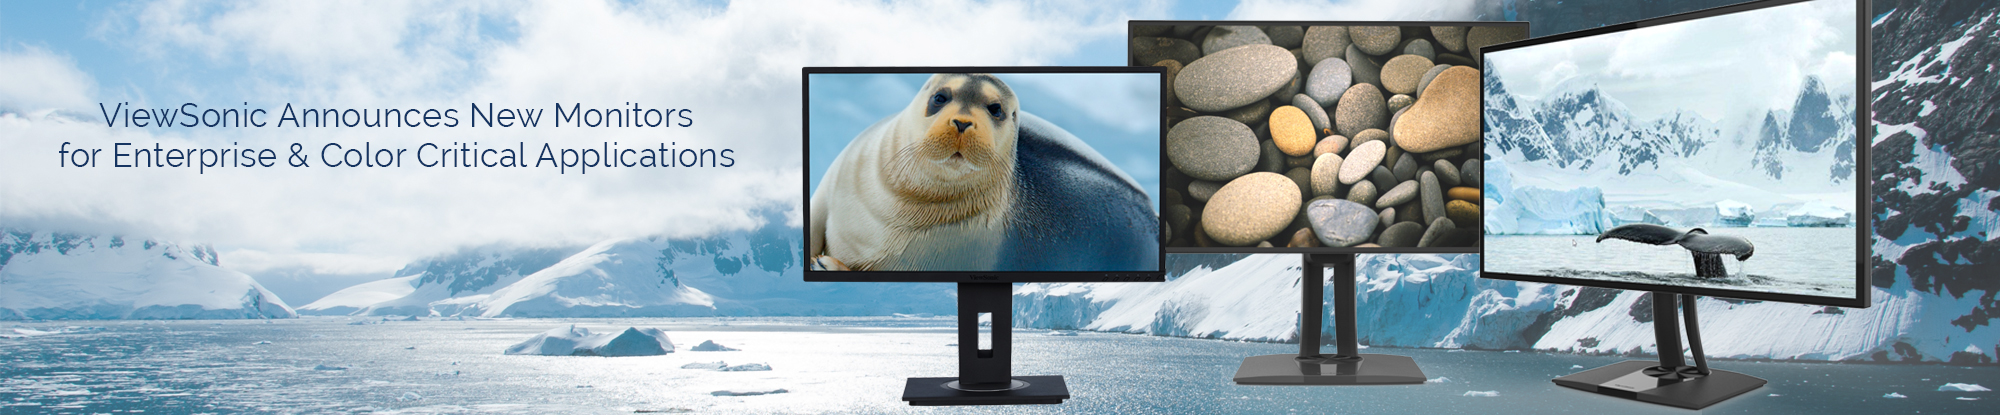 ViewSonic Introduces New Professional and Enterprise Monitors; Features Premium Color Reproduction, Thunderbolt™ 3 Connectivity and Premium Front-of-Screen Experience